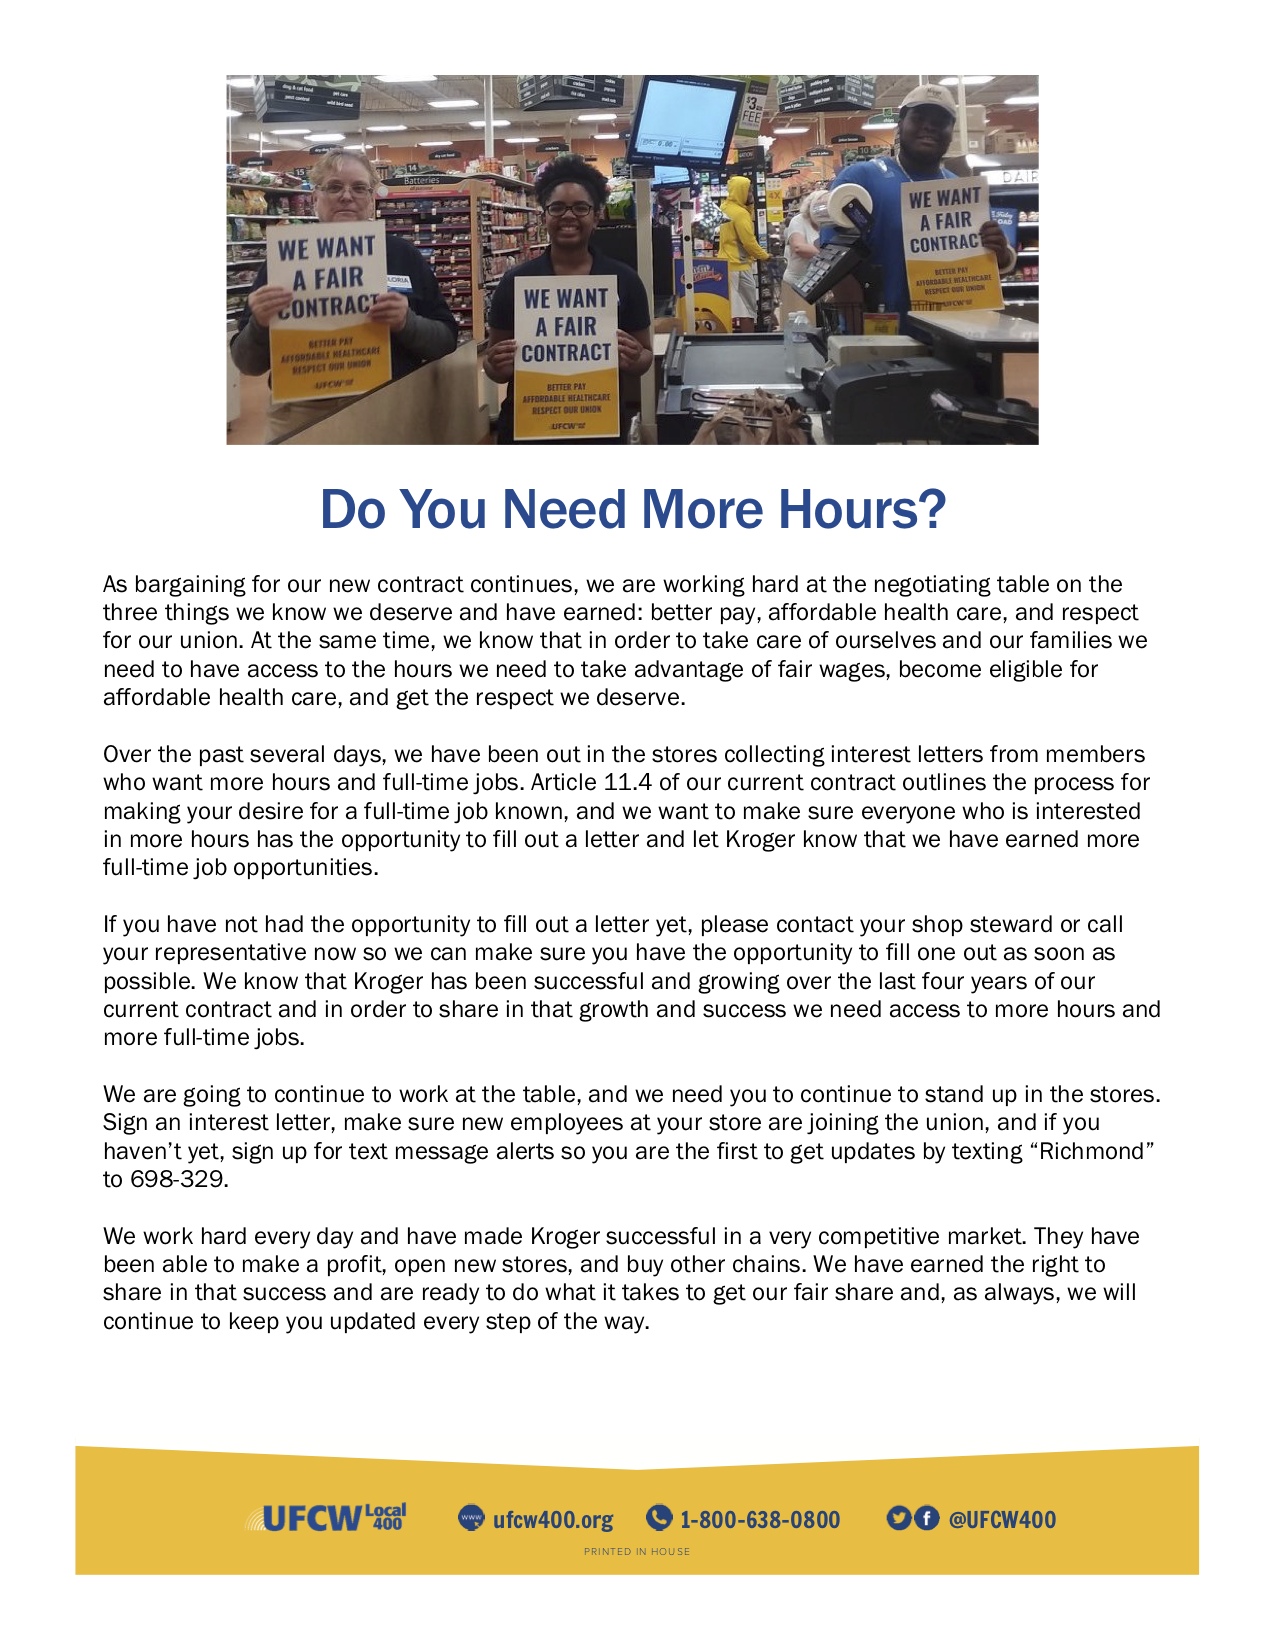 Kroger Richmond/Tidewater Bargaining Update: Do You Need More Hours?